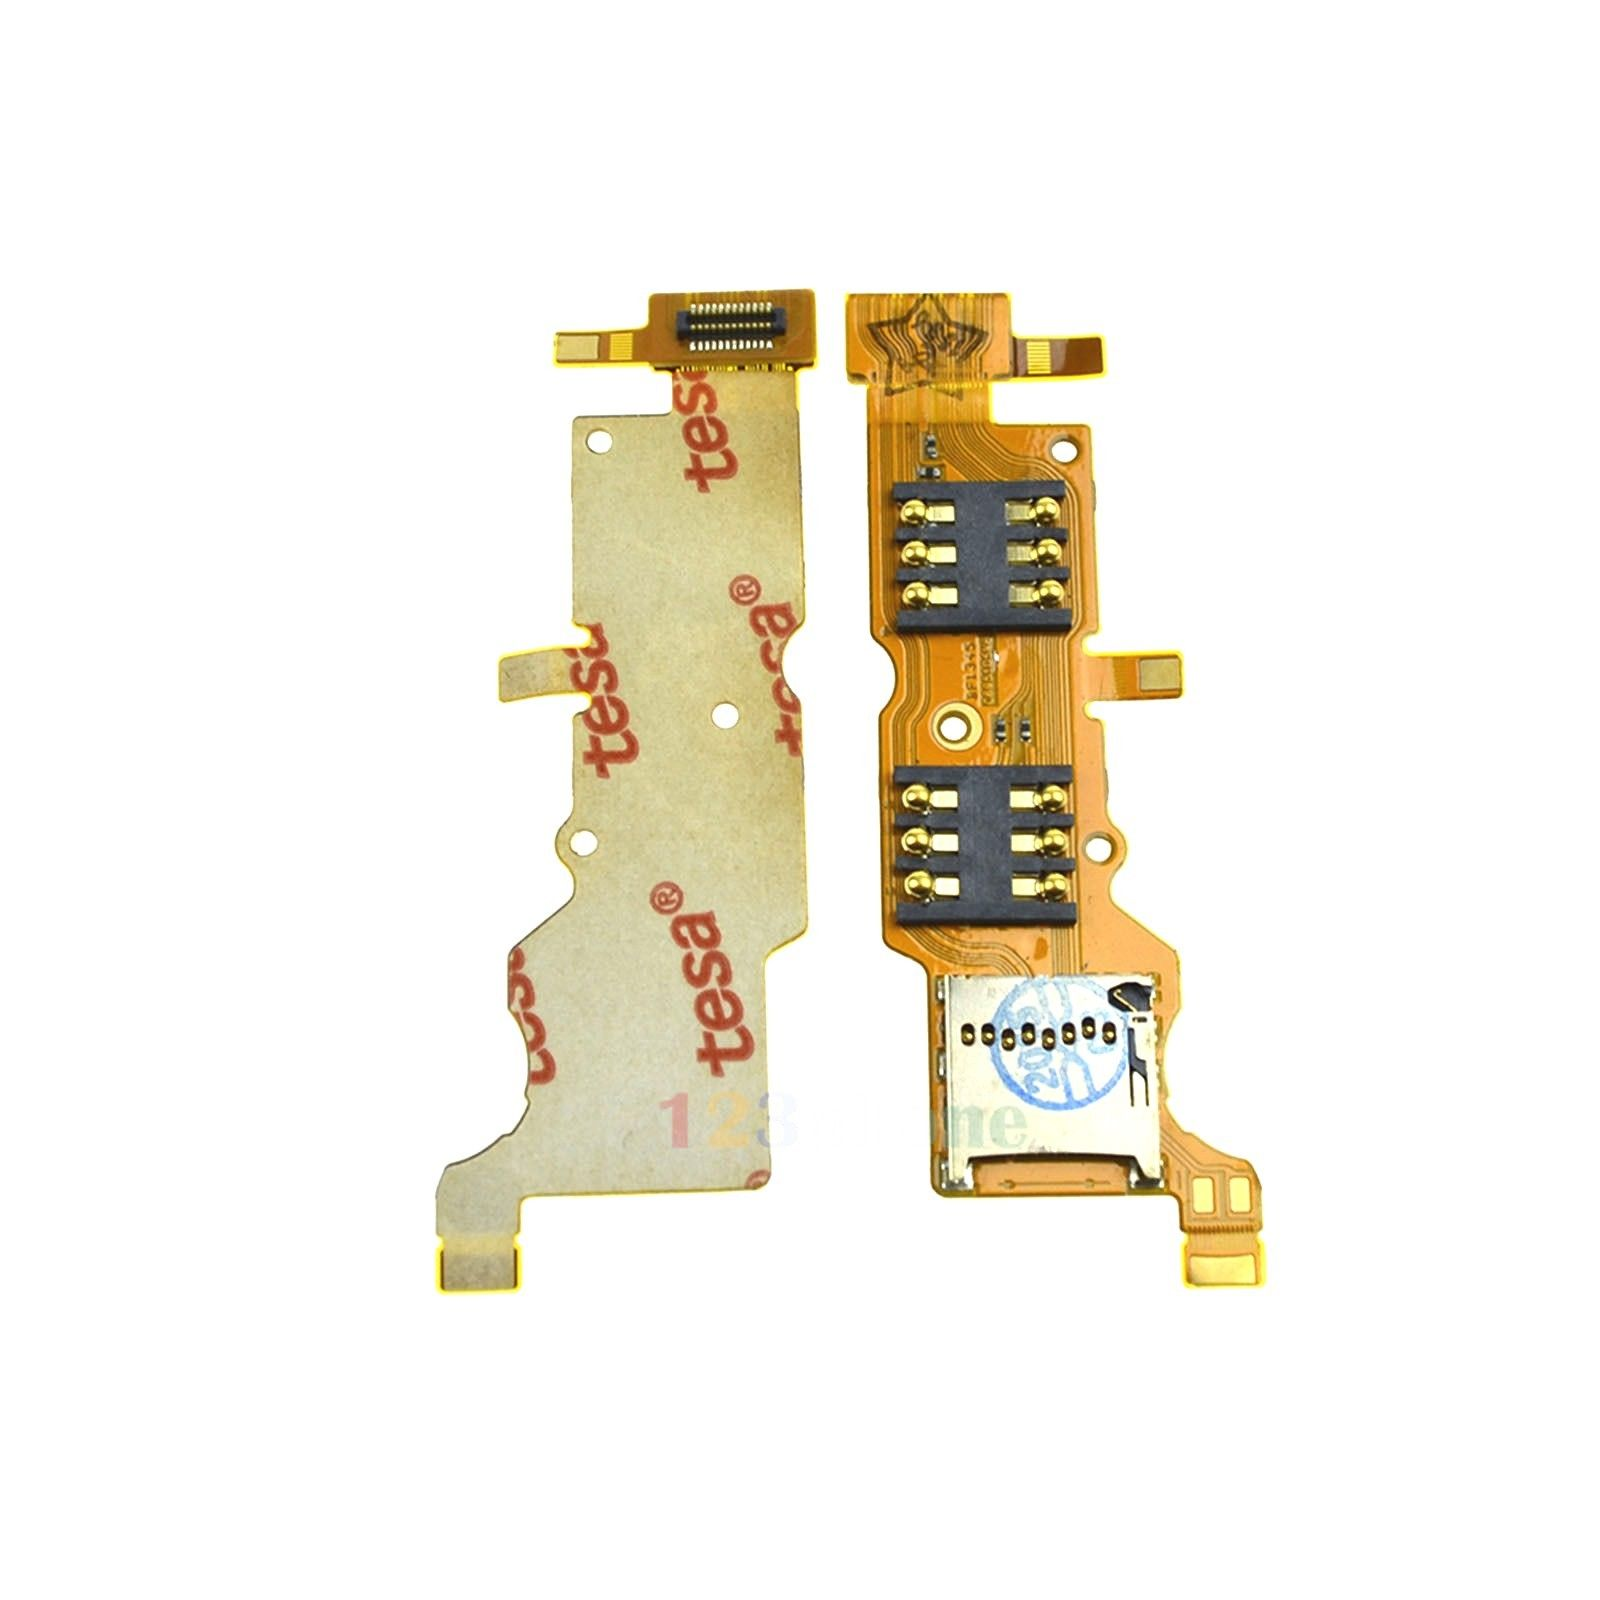 Details about SIM + SD CARD READER HOLDER TRAY FLEX CABLE FOR HUAWEI ASCEND  Y530